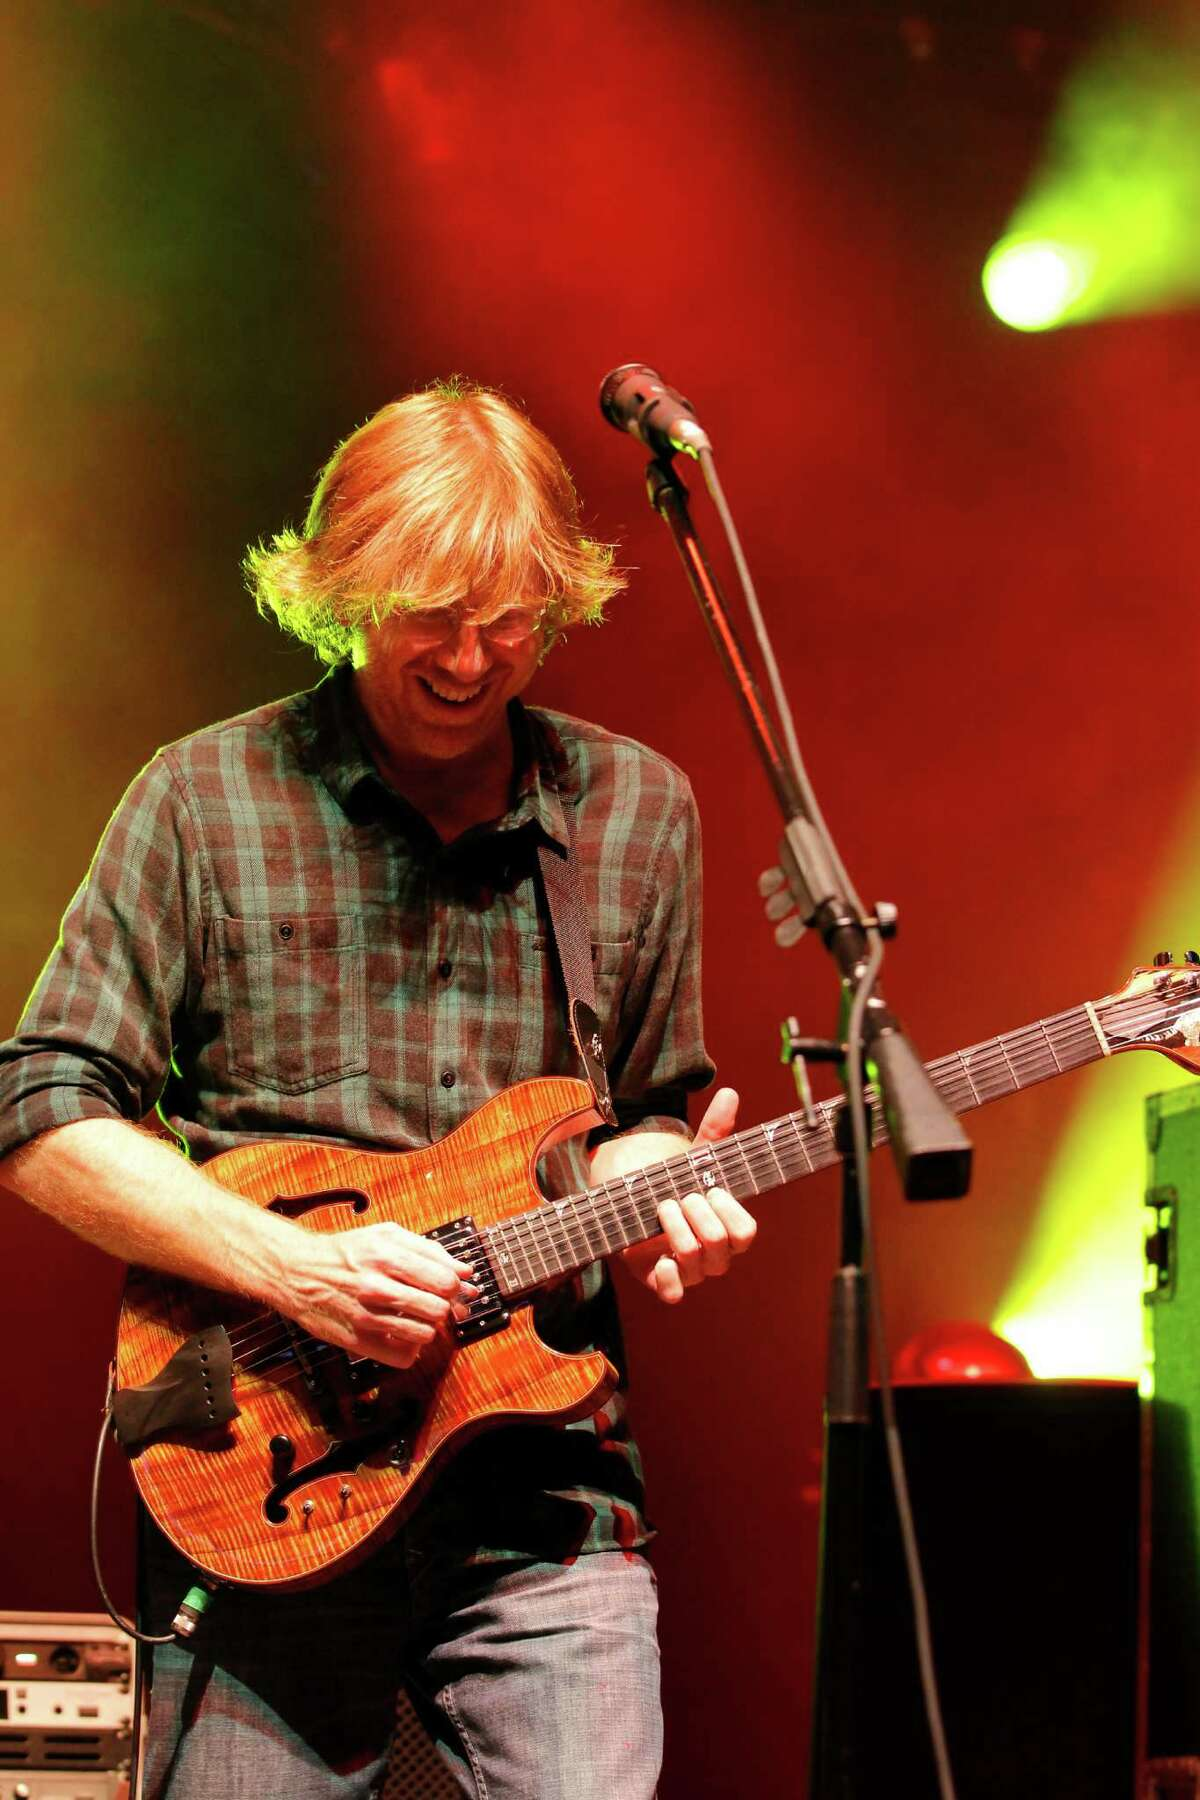 Trey Anastasio, lead vocalist and guitarist for the band Phish, performs at the Saratoga Performing Arts Center Friday night, July 6, 2012 in Saratoga Springs, N.Y. (Dan Little/Special to the Times Union)